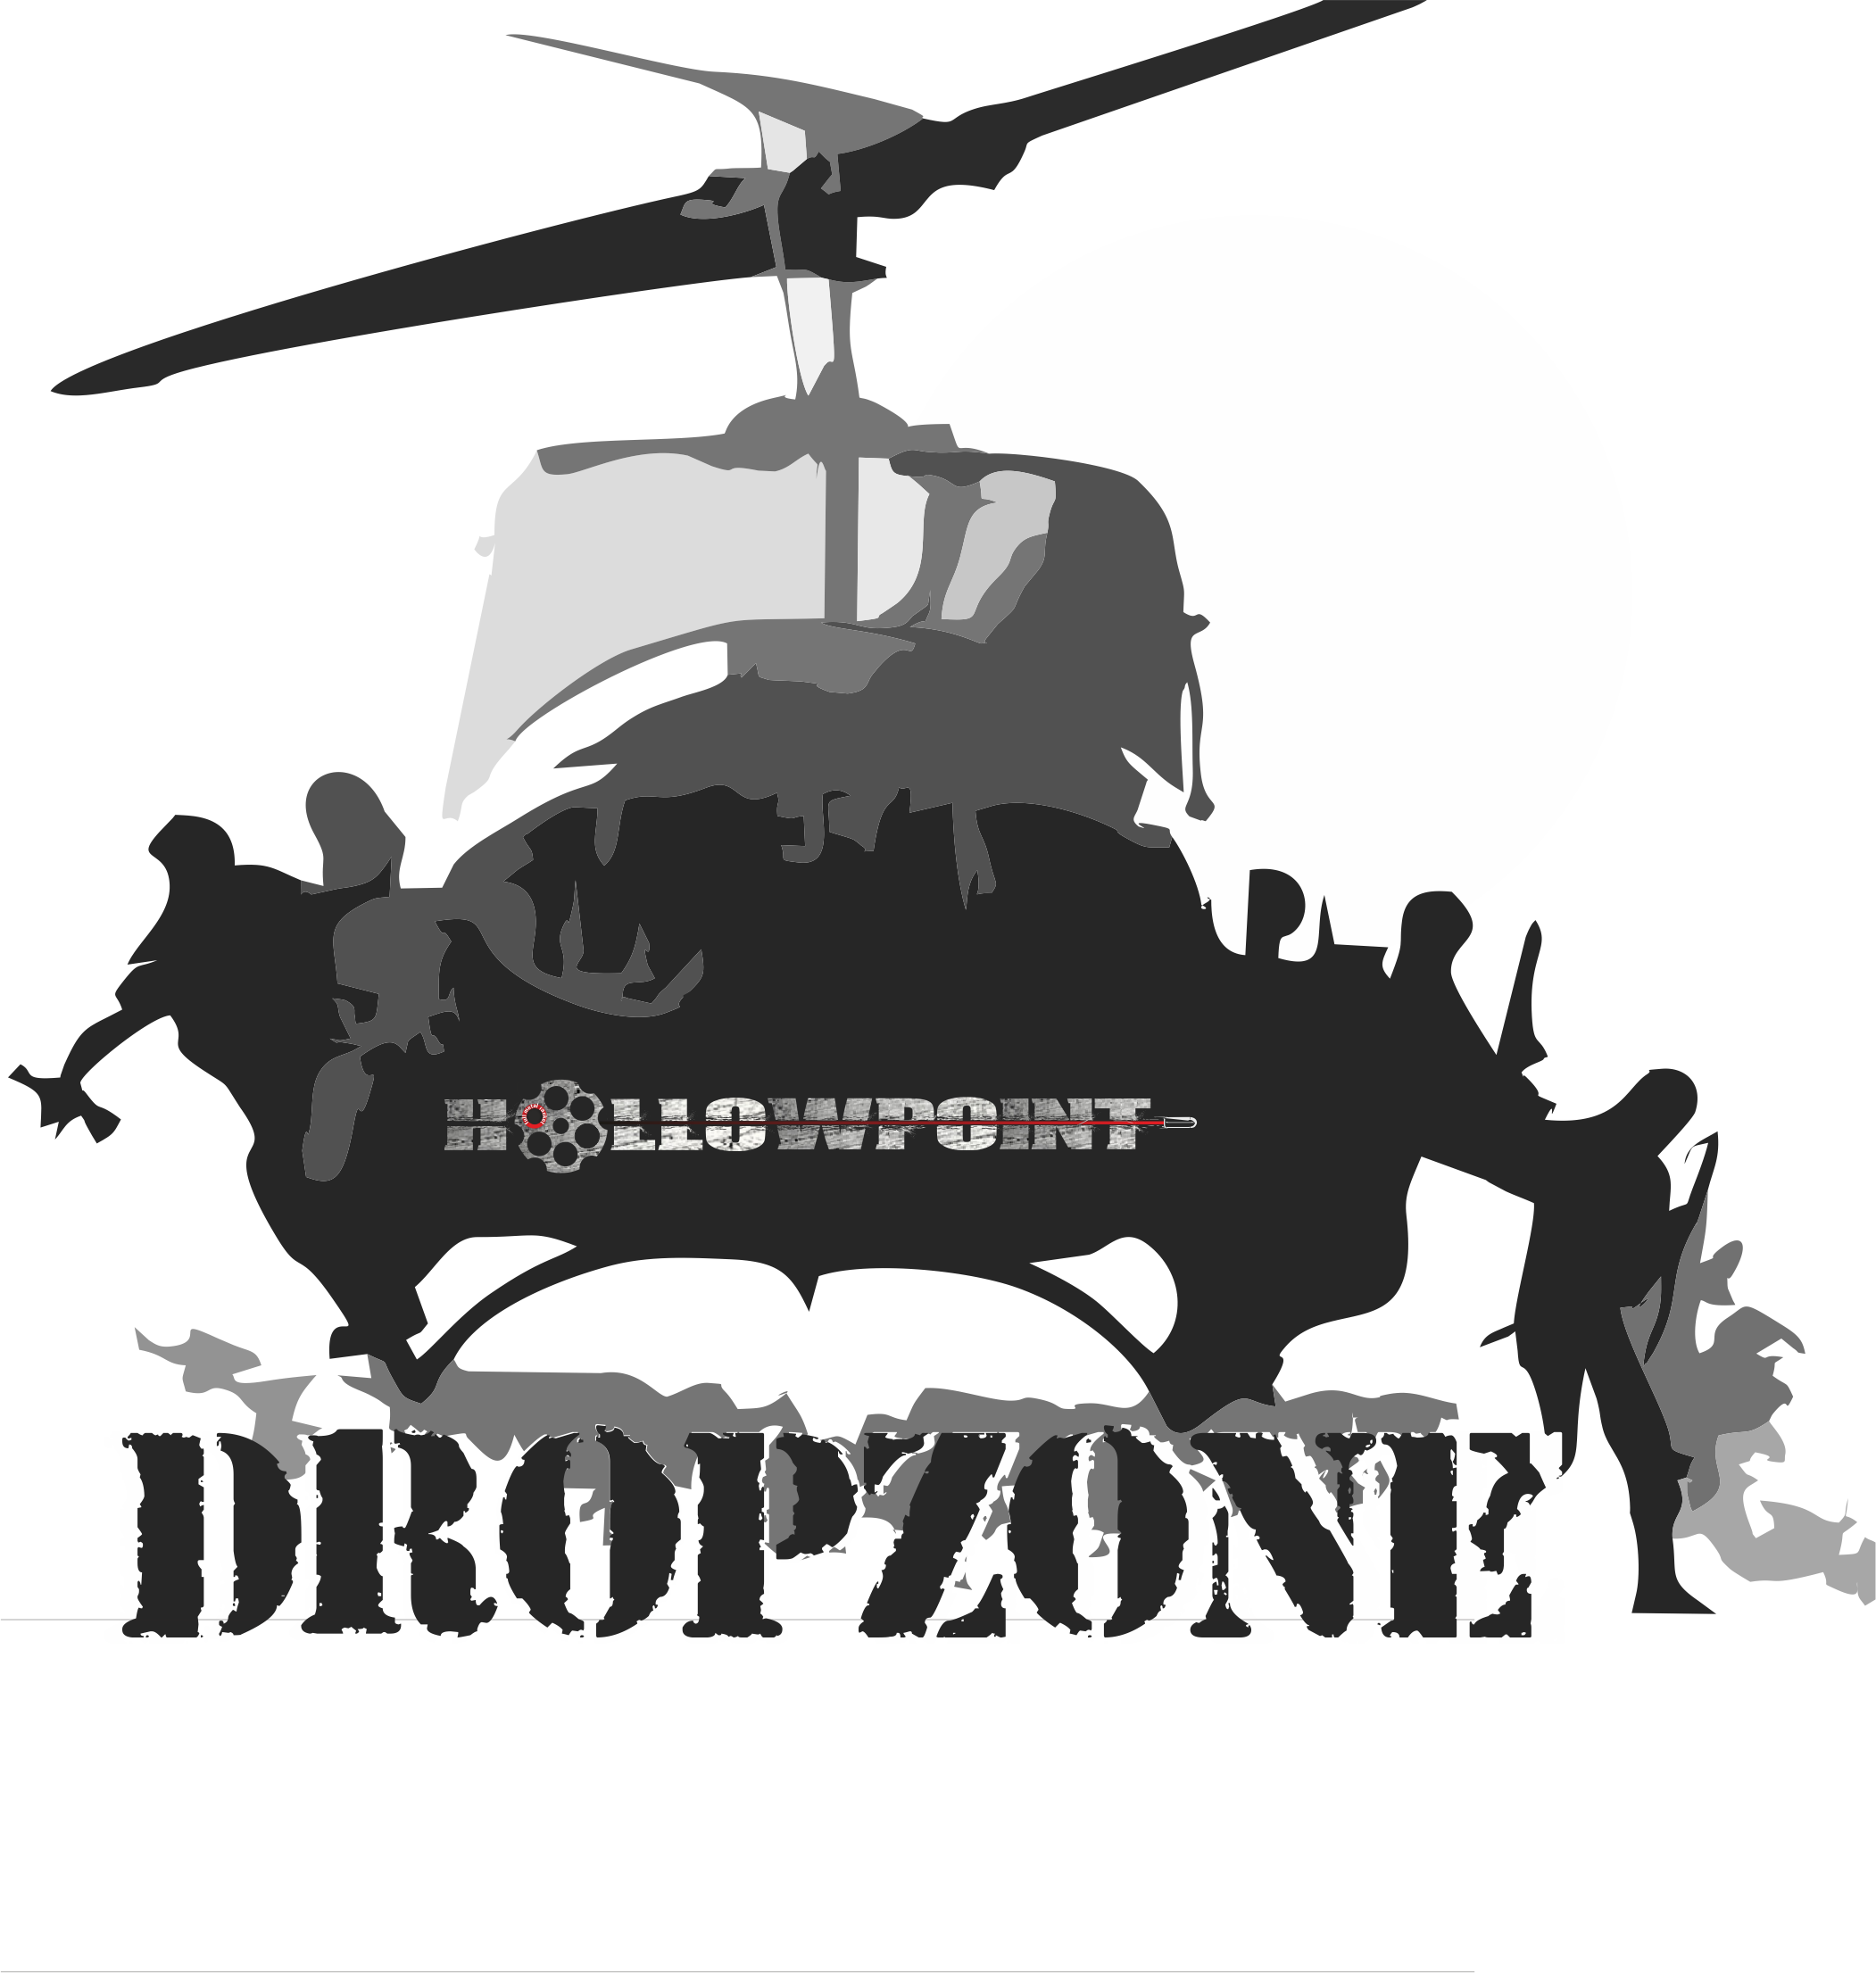 DROPZONE NO BACKGROUNDpng